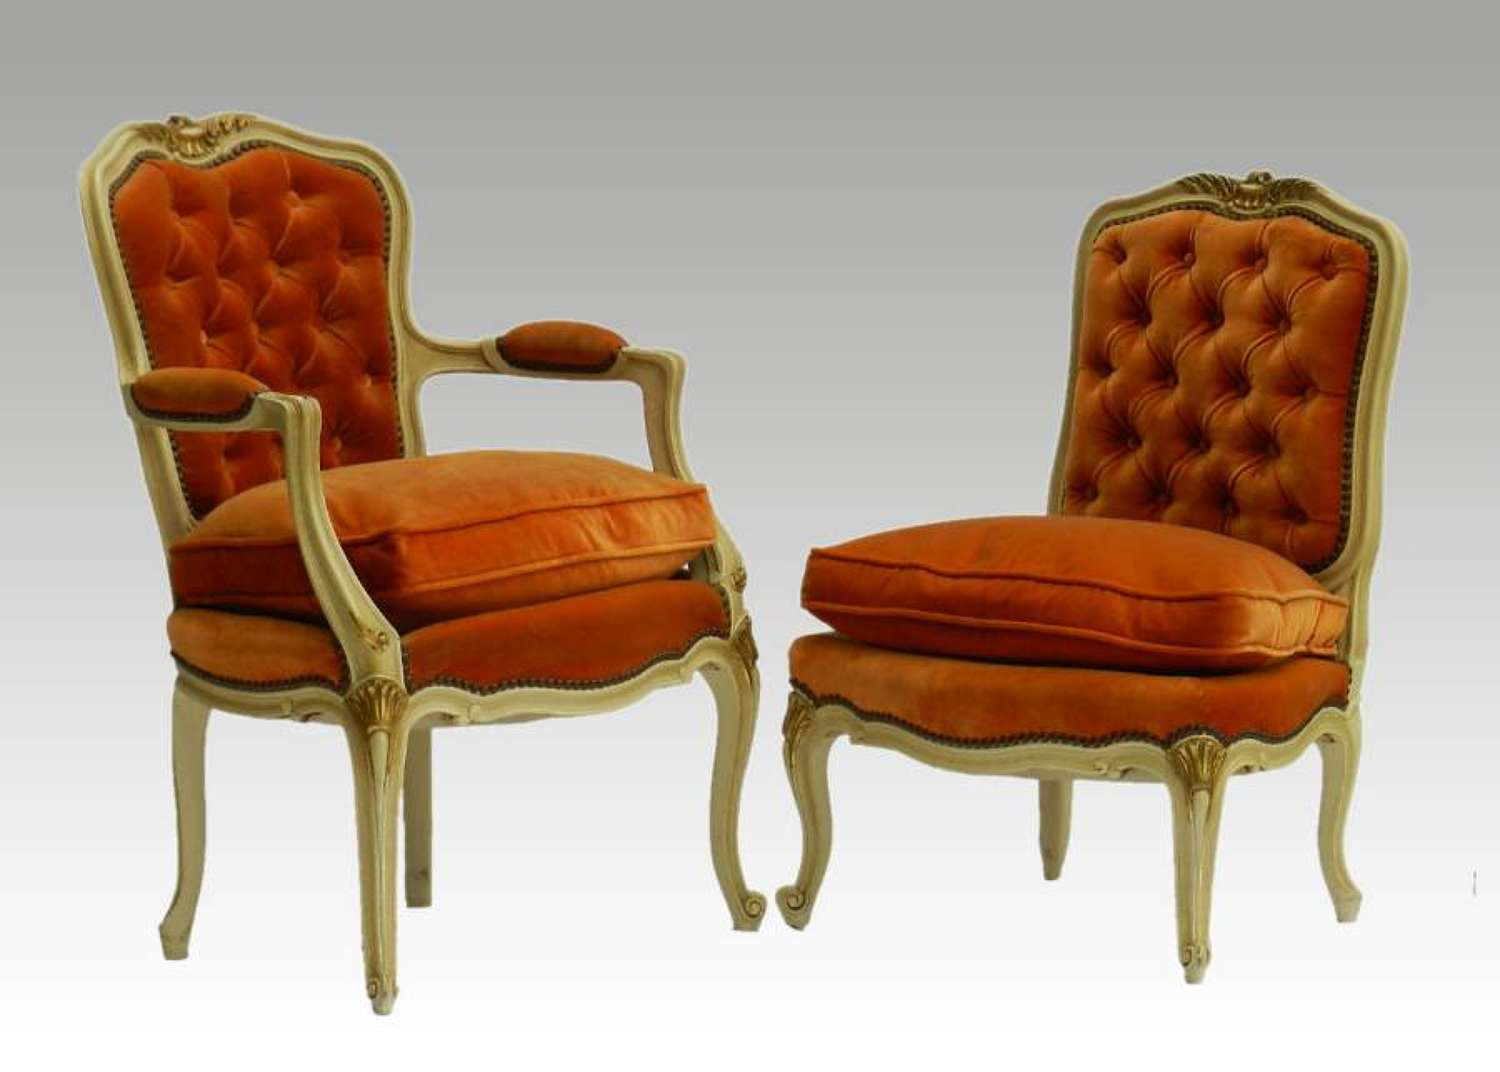 2 French Chairs Armchair & Boudoir Tufted early C20 Louis